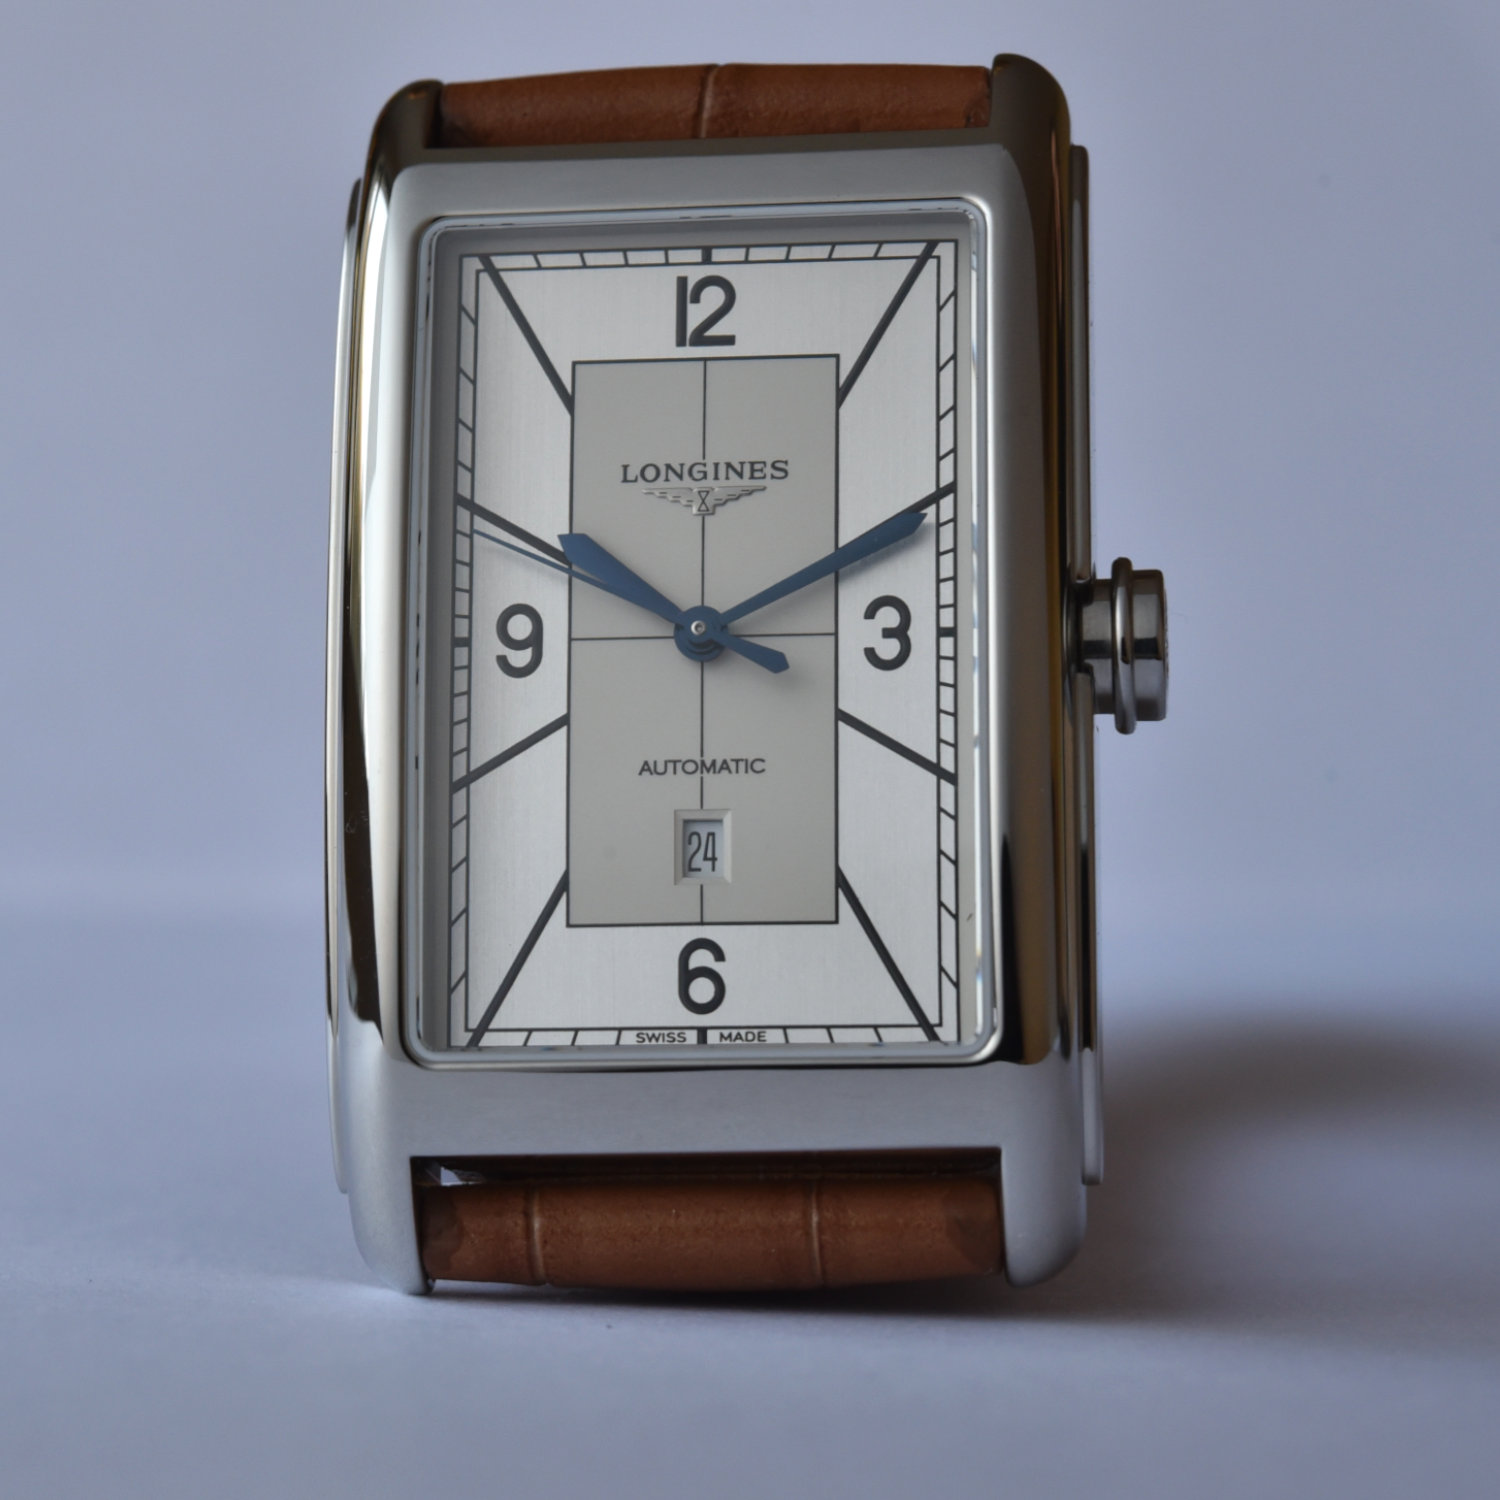 2021 Longines DolceVita Sector Dial 9